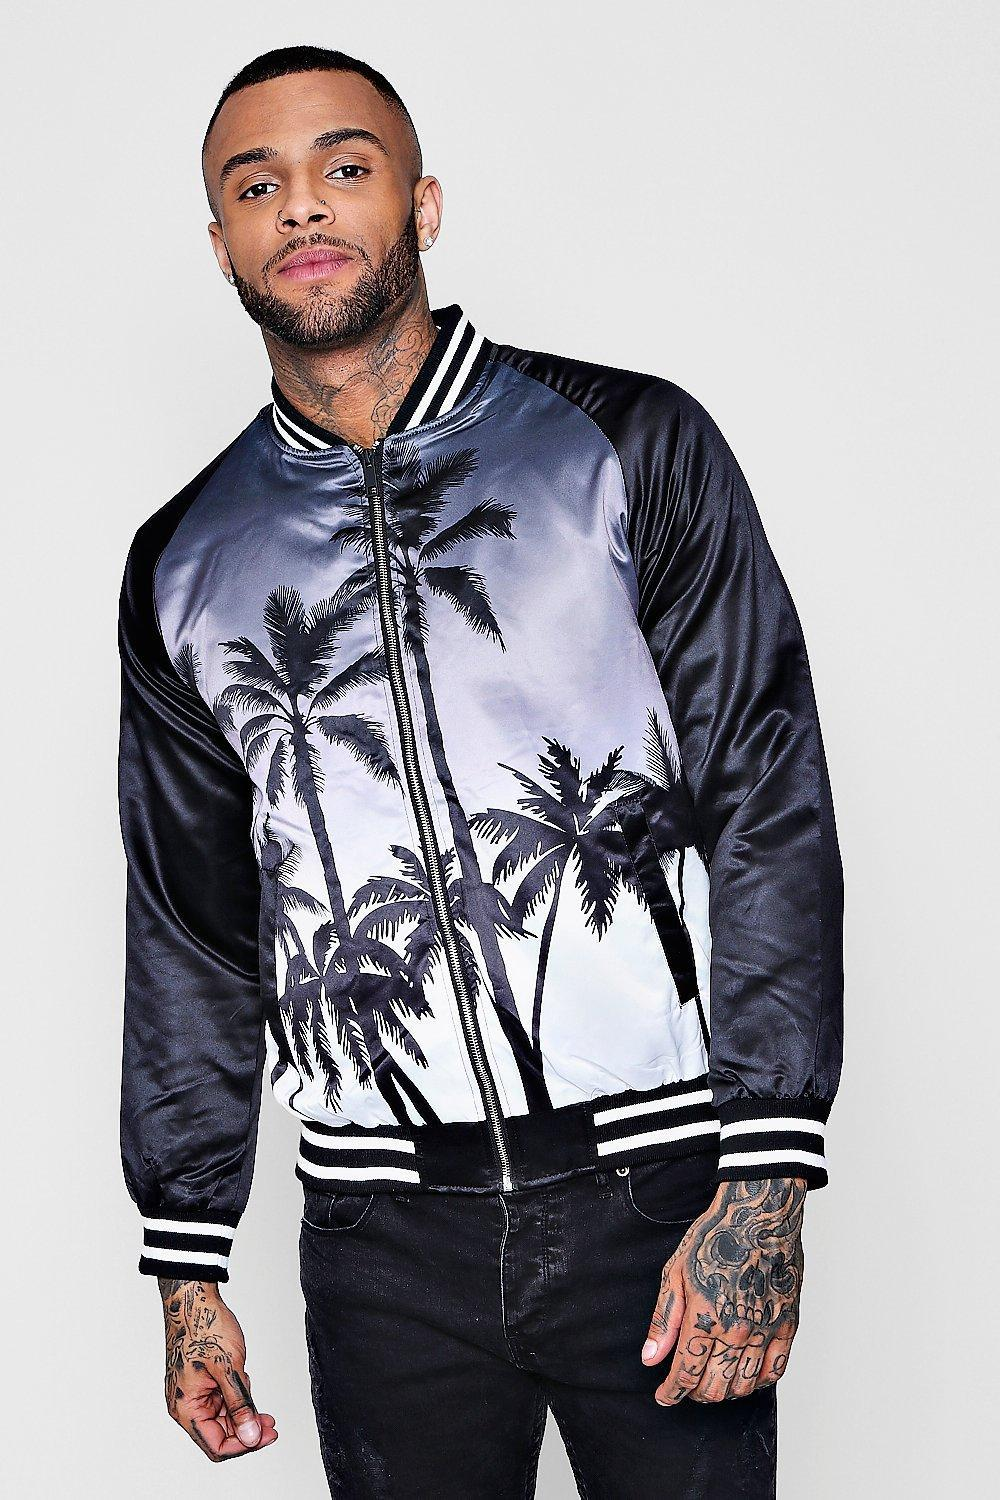 058e3cddda83a Boohoo Ombre Palm Print Bomber Jacket in Black for Men - Lyst